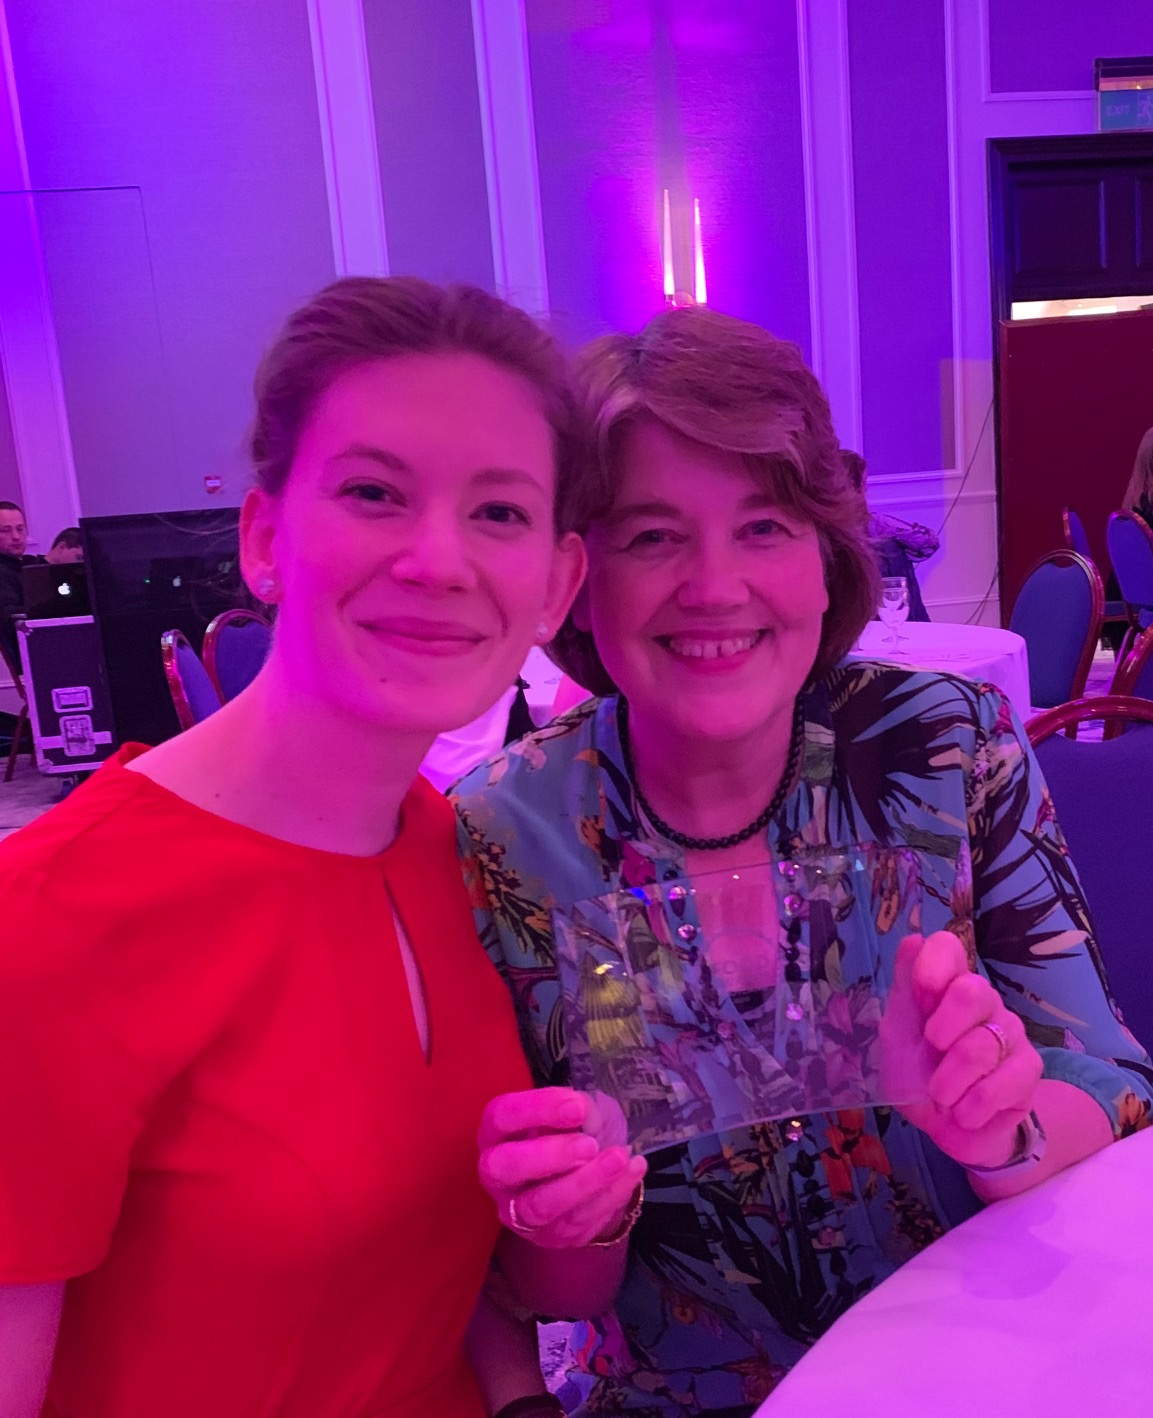 Edinburgh New Town Cookery School wins Cookery School of the Year